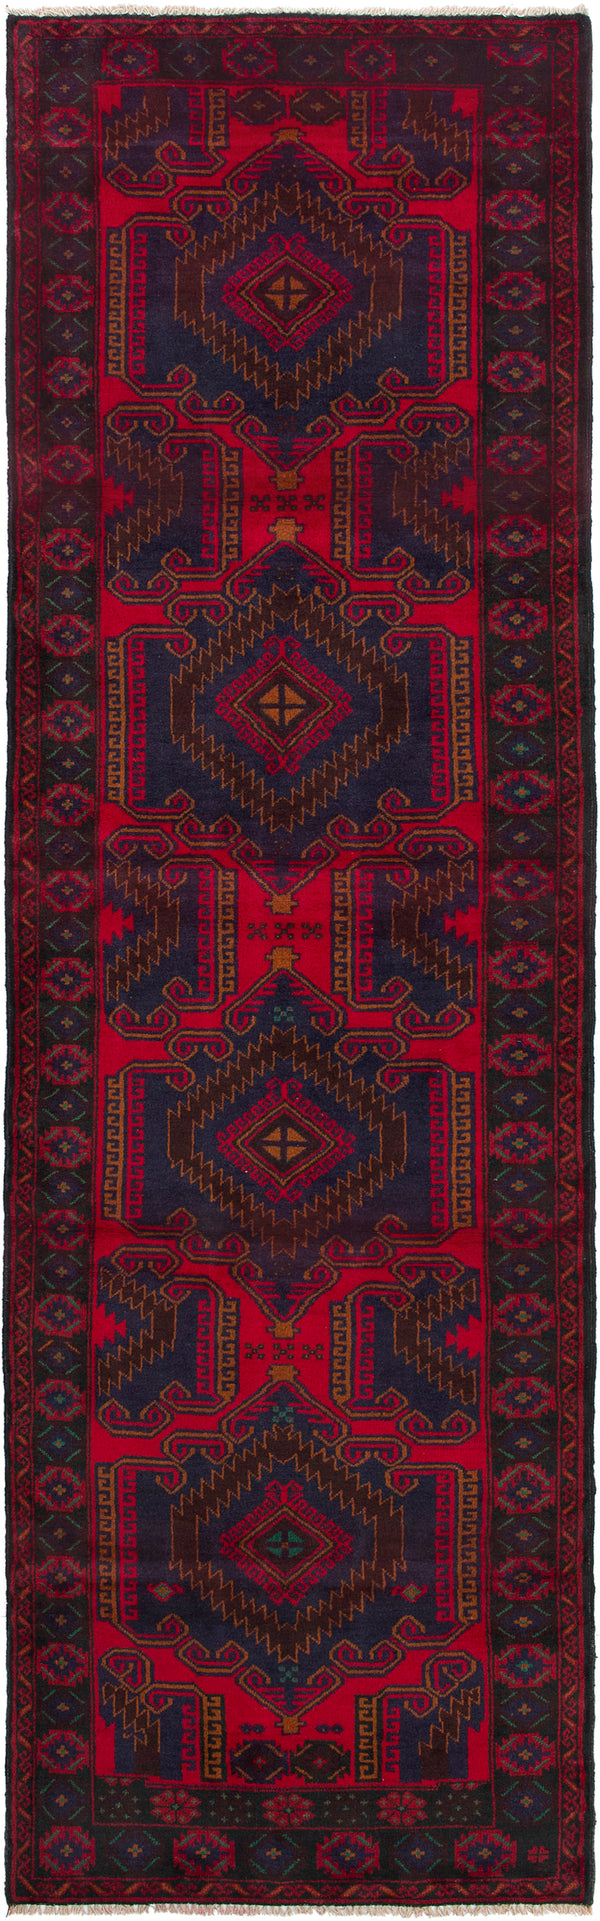 Hand-knotted Afghan Bordered  Tribal Rizbaft Runner rug  Red 3.2 x 11